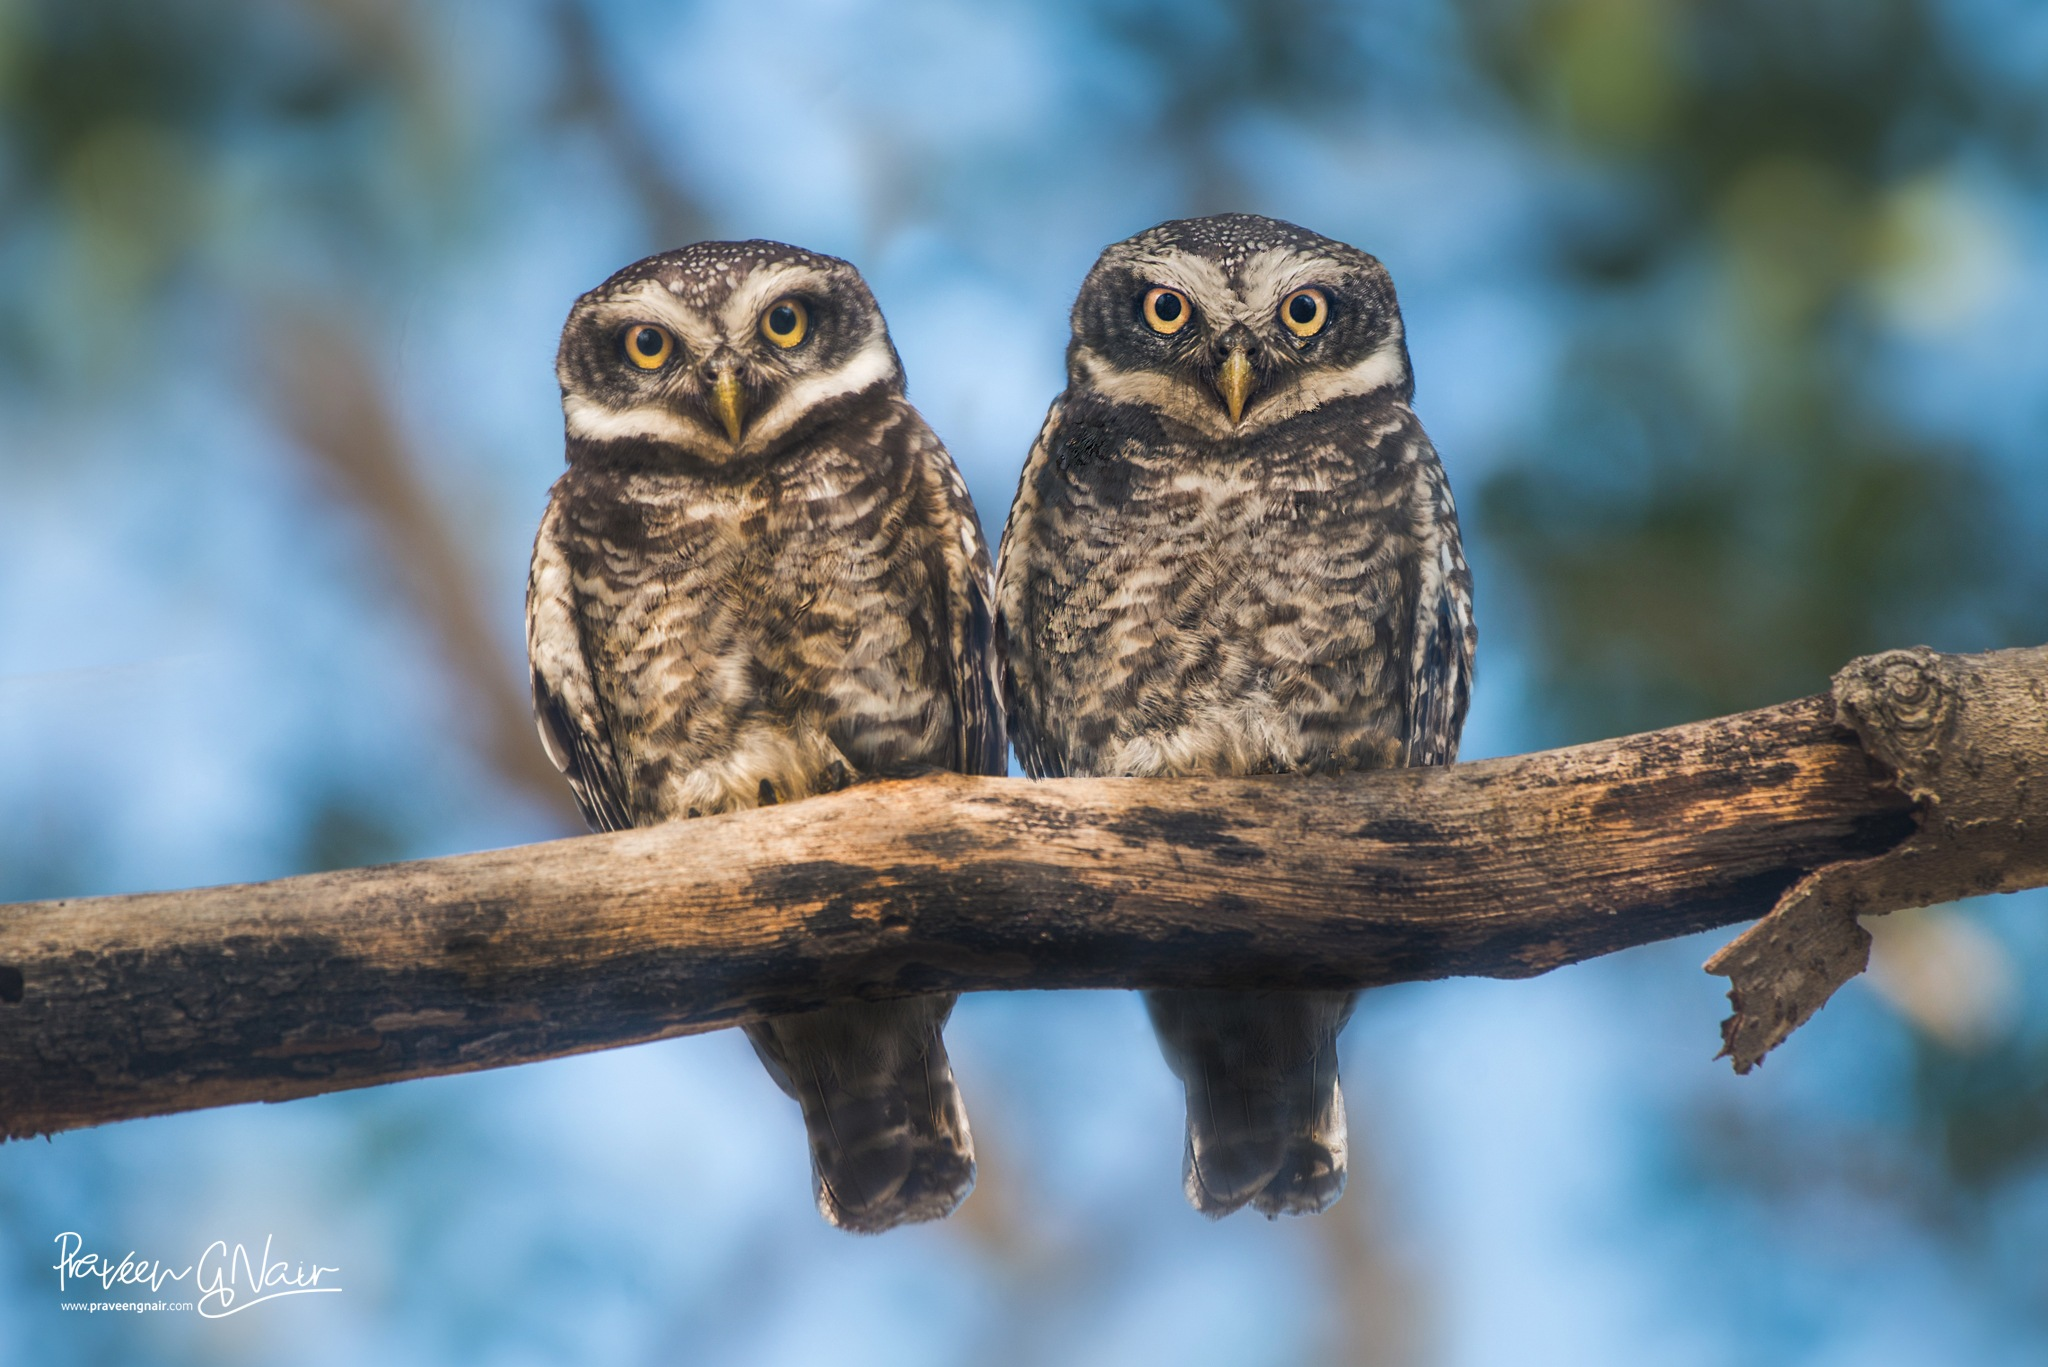 Spotted Owlet or Small Owl by praveen g nair